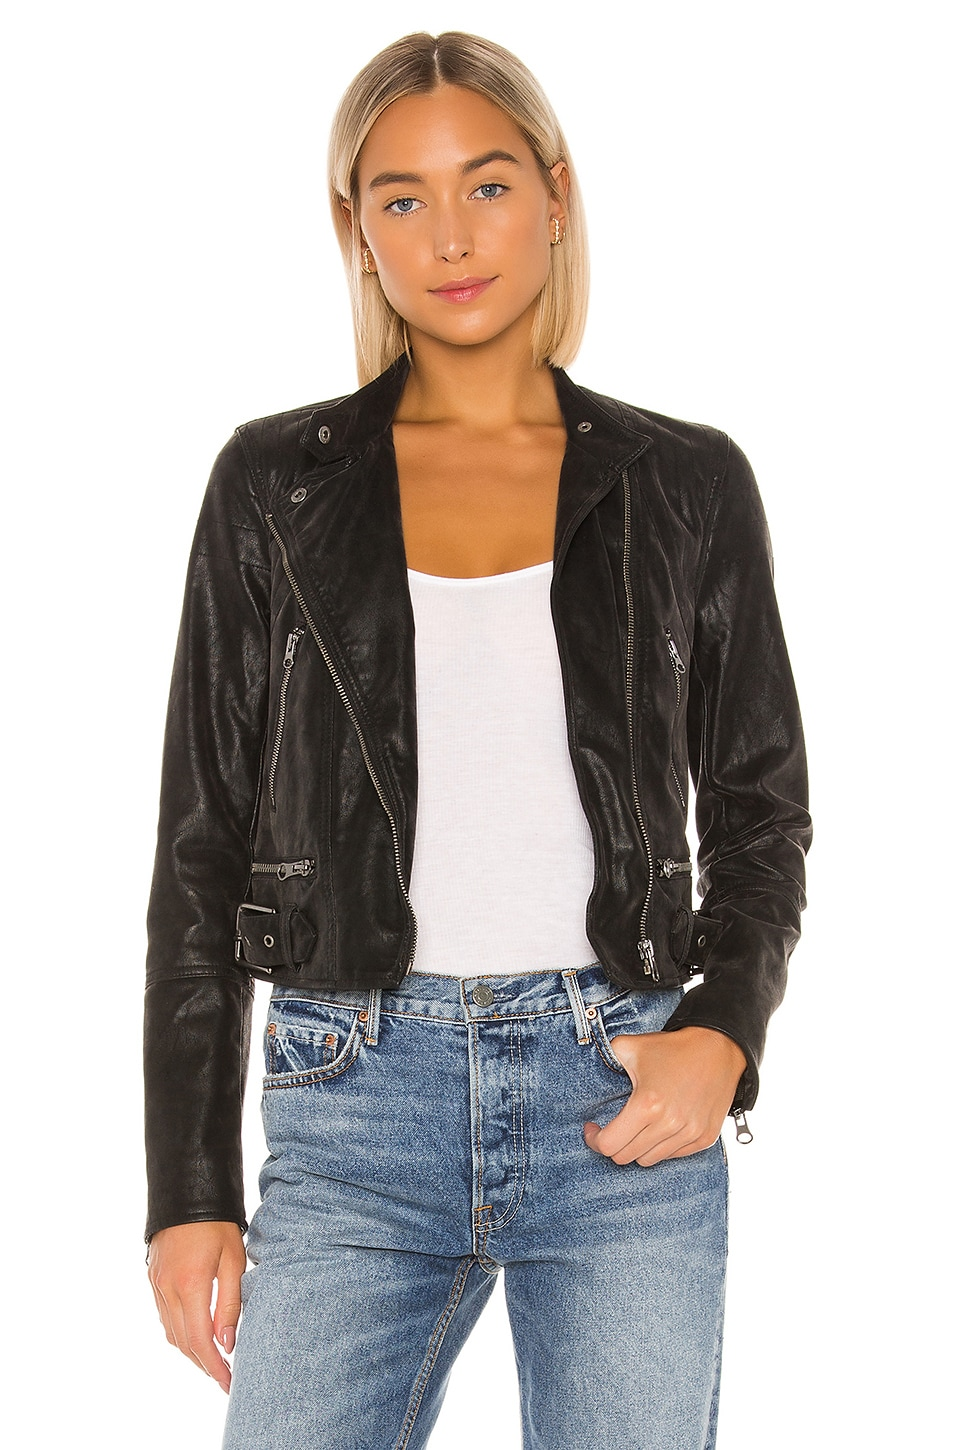 Free People Felix Vegan Moto Jacket in Black